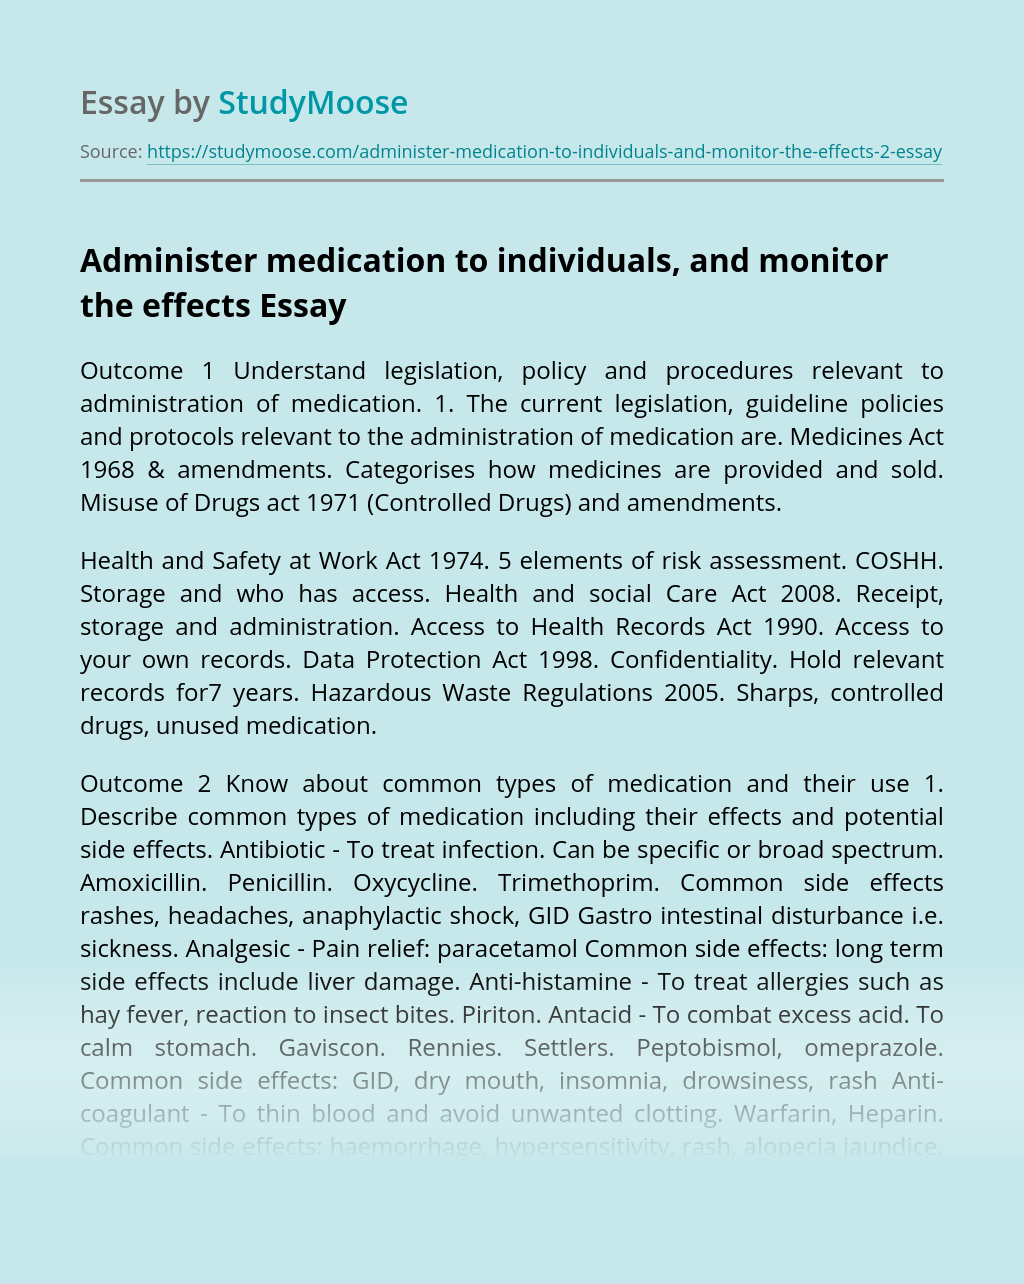 Administer medication to individuals, and monitor the effects